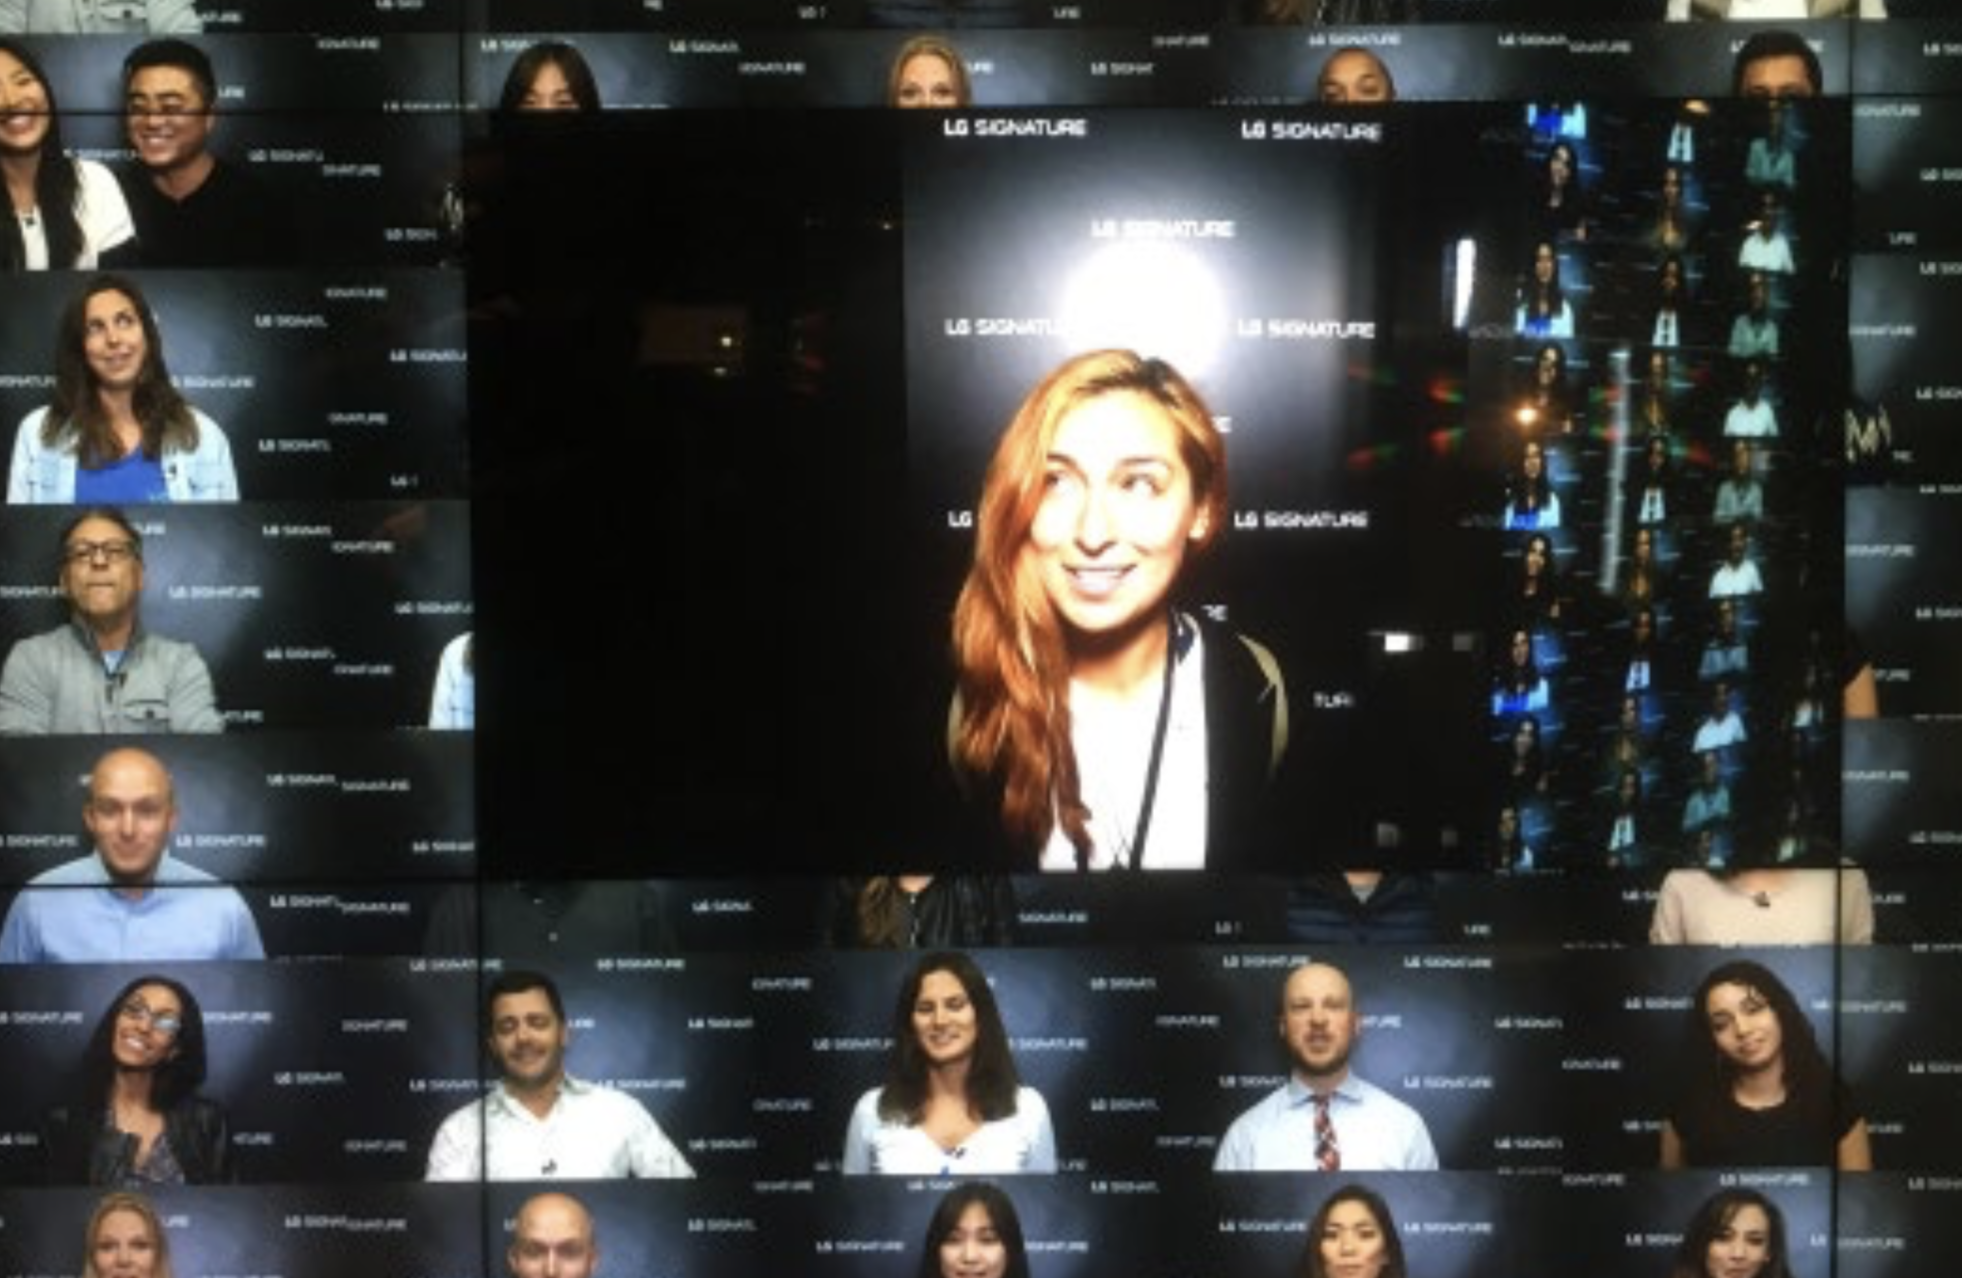 POPvideo_booth.png